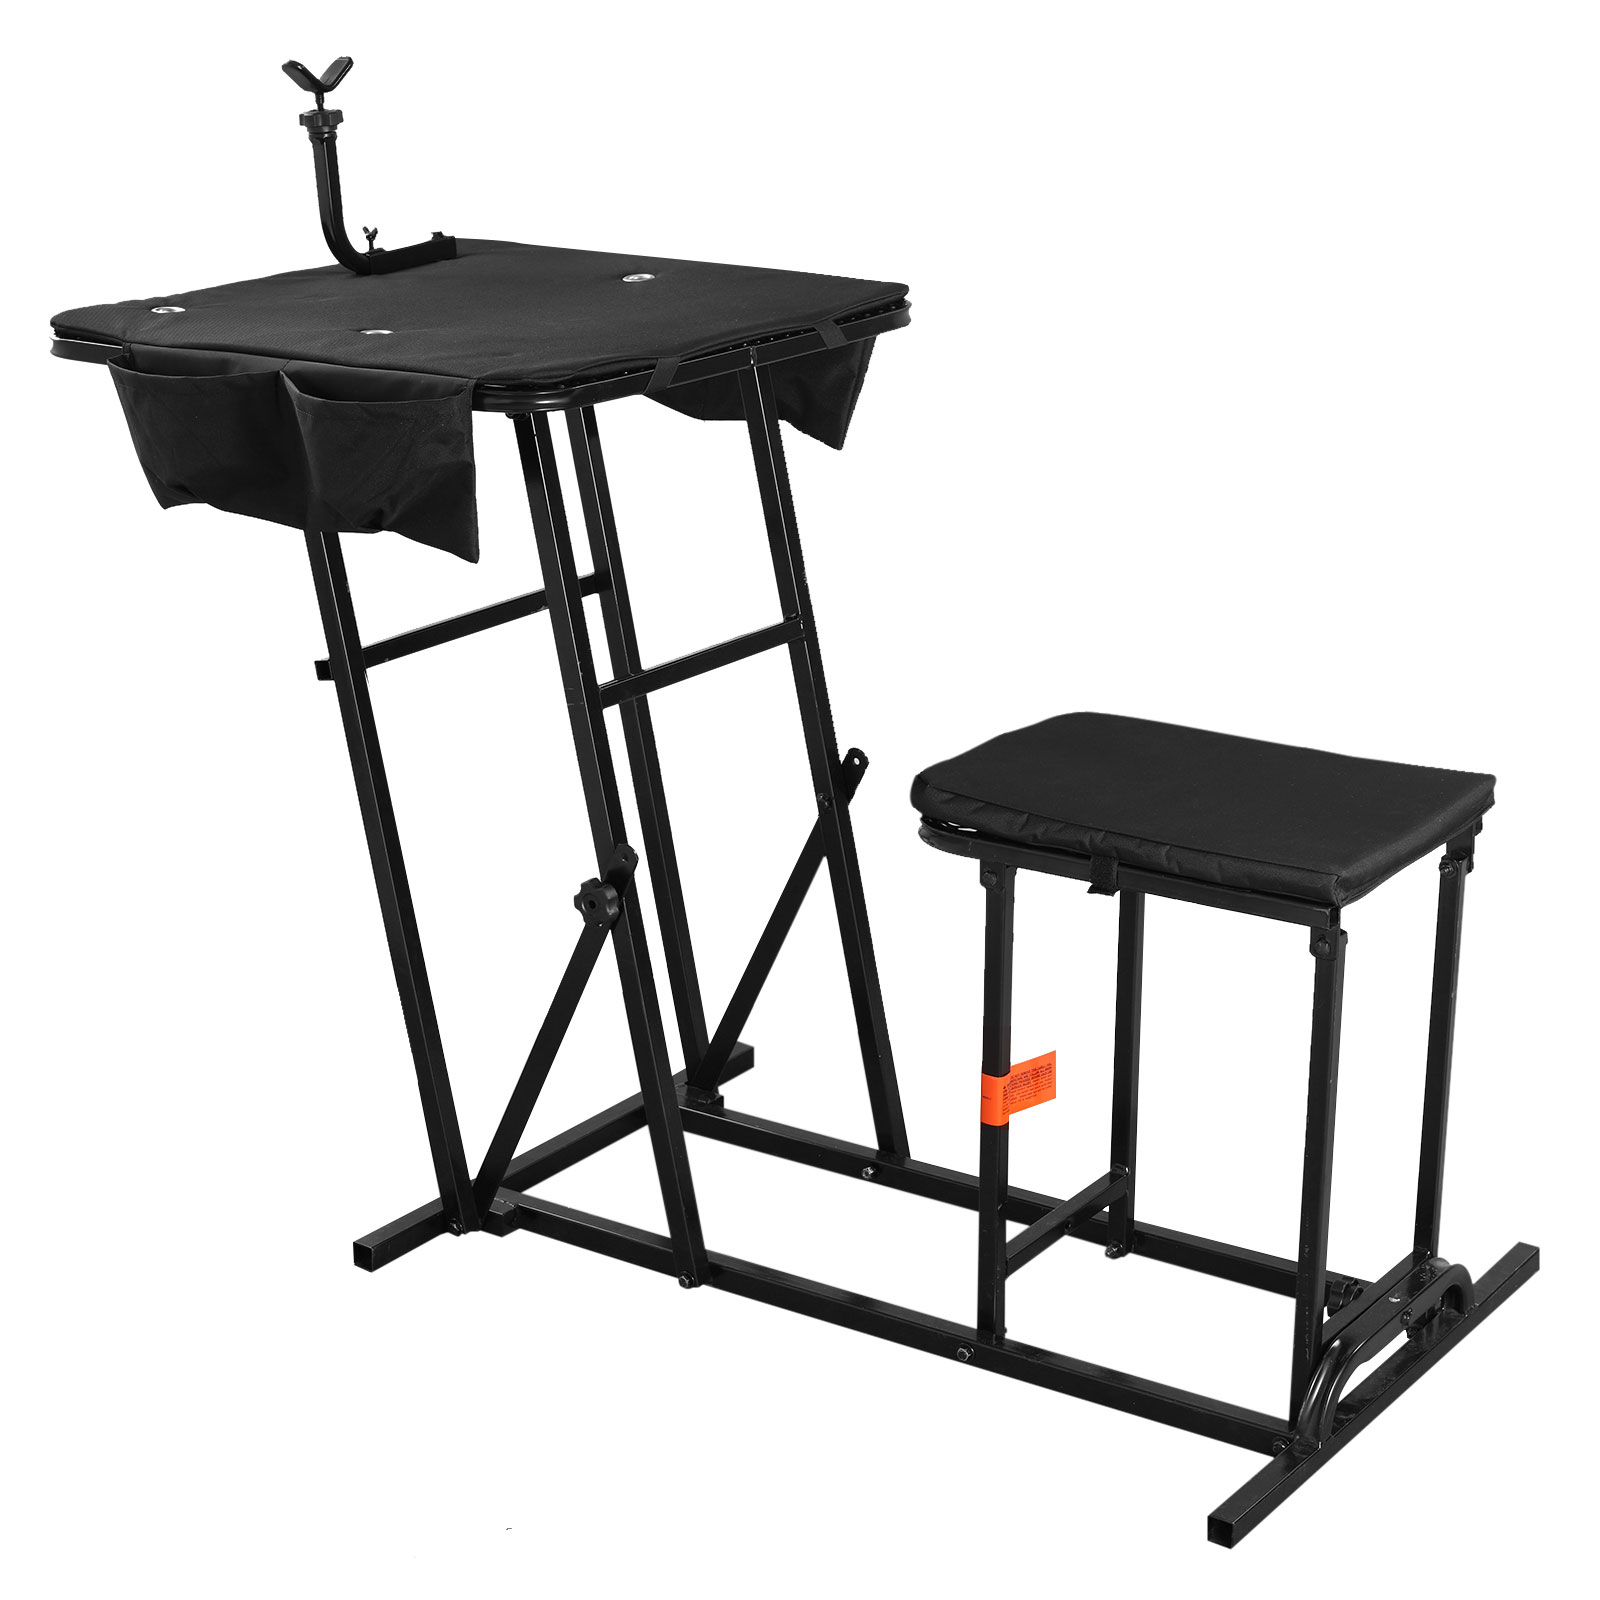 portable hunting chair american plastic toy table and chairs set shooting seat bench field range